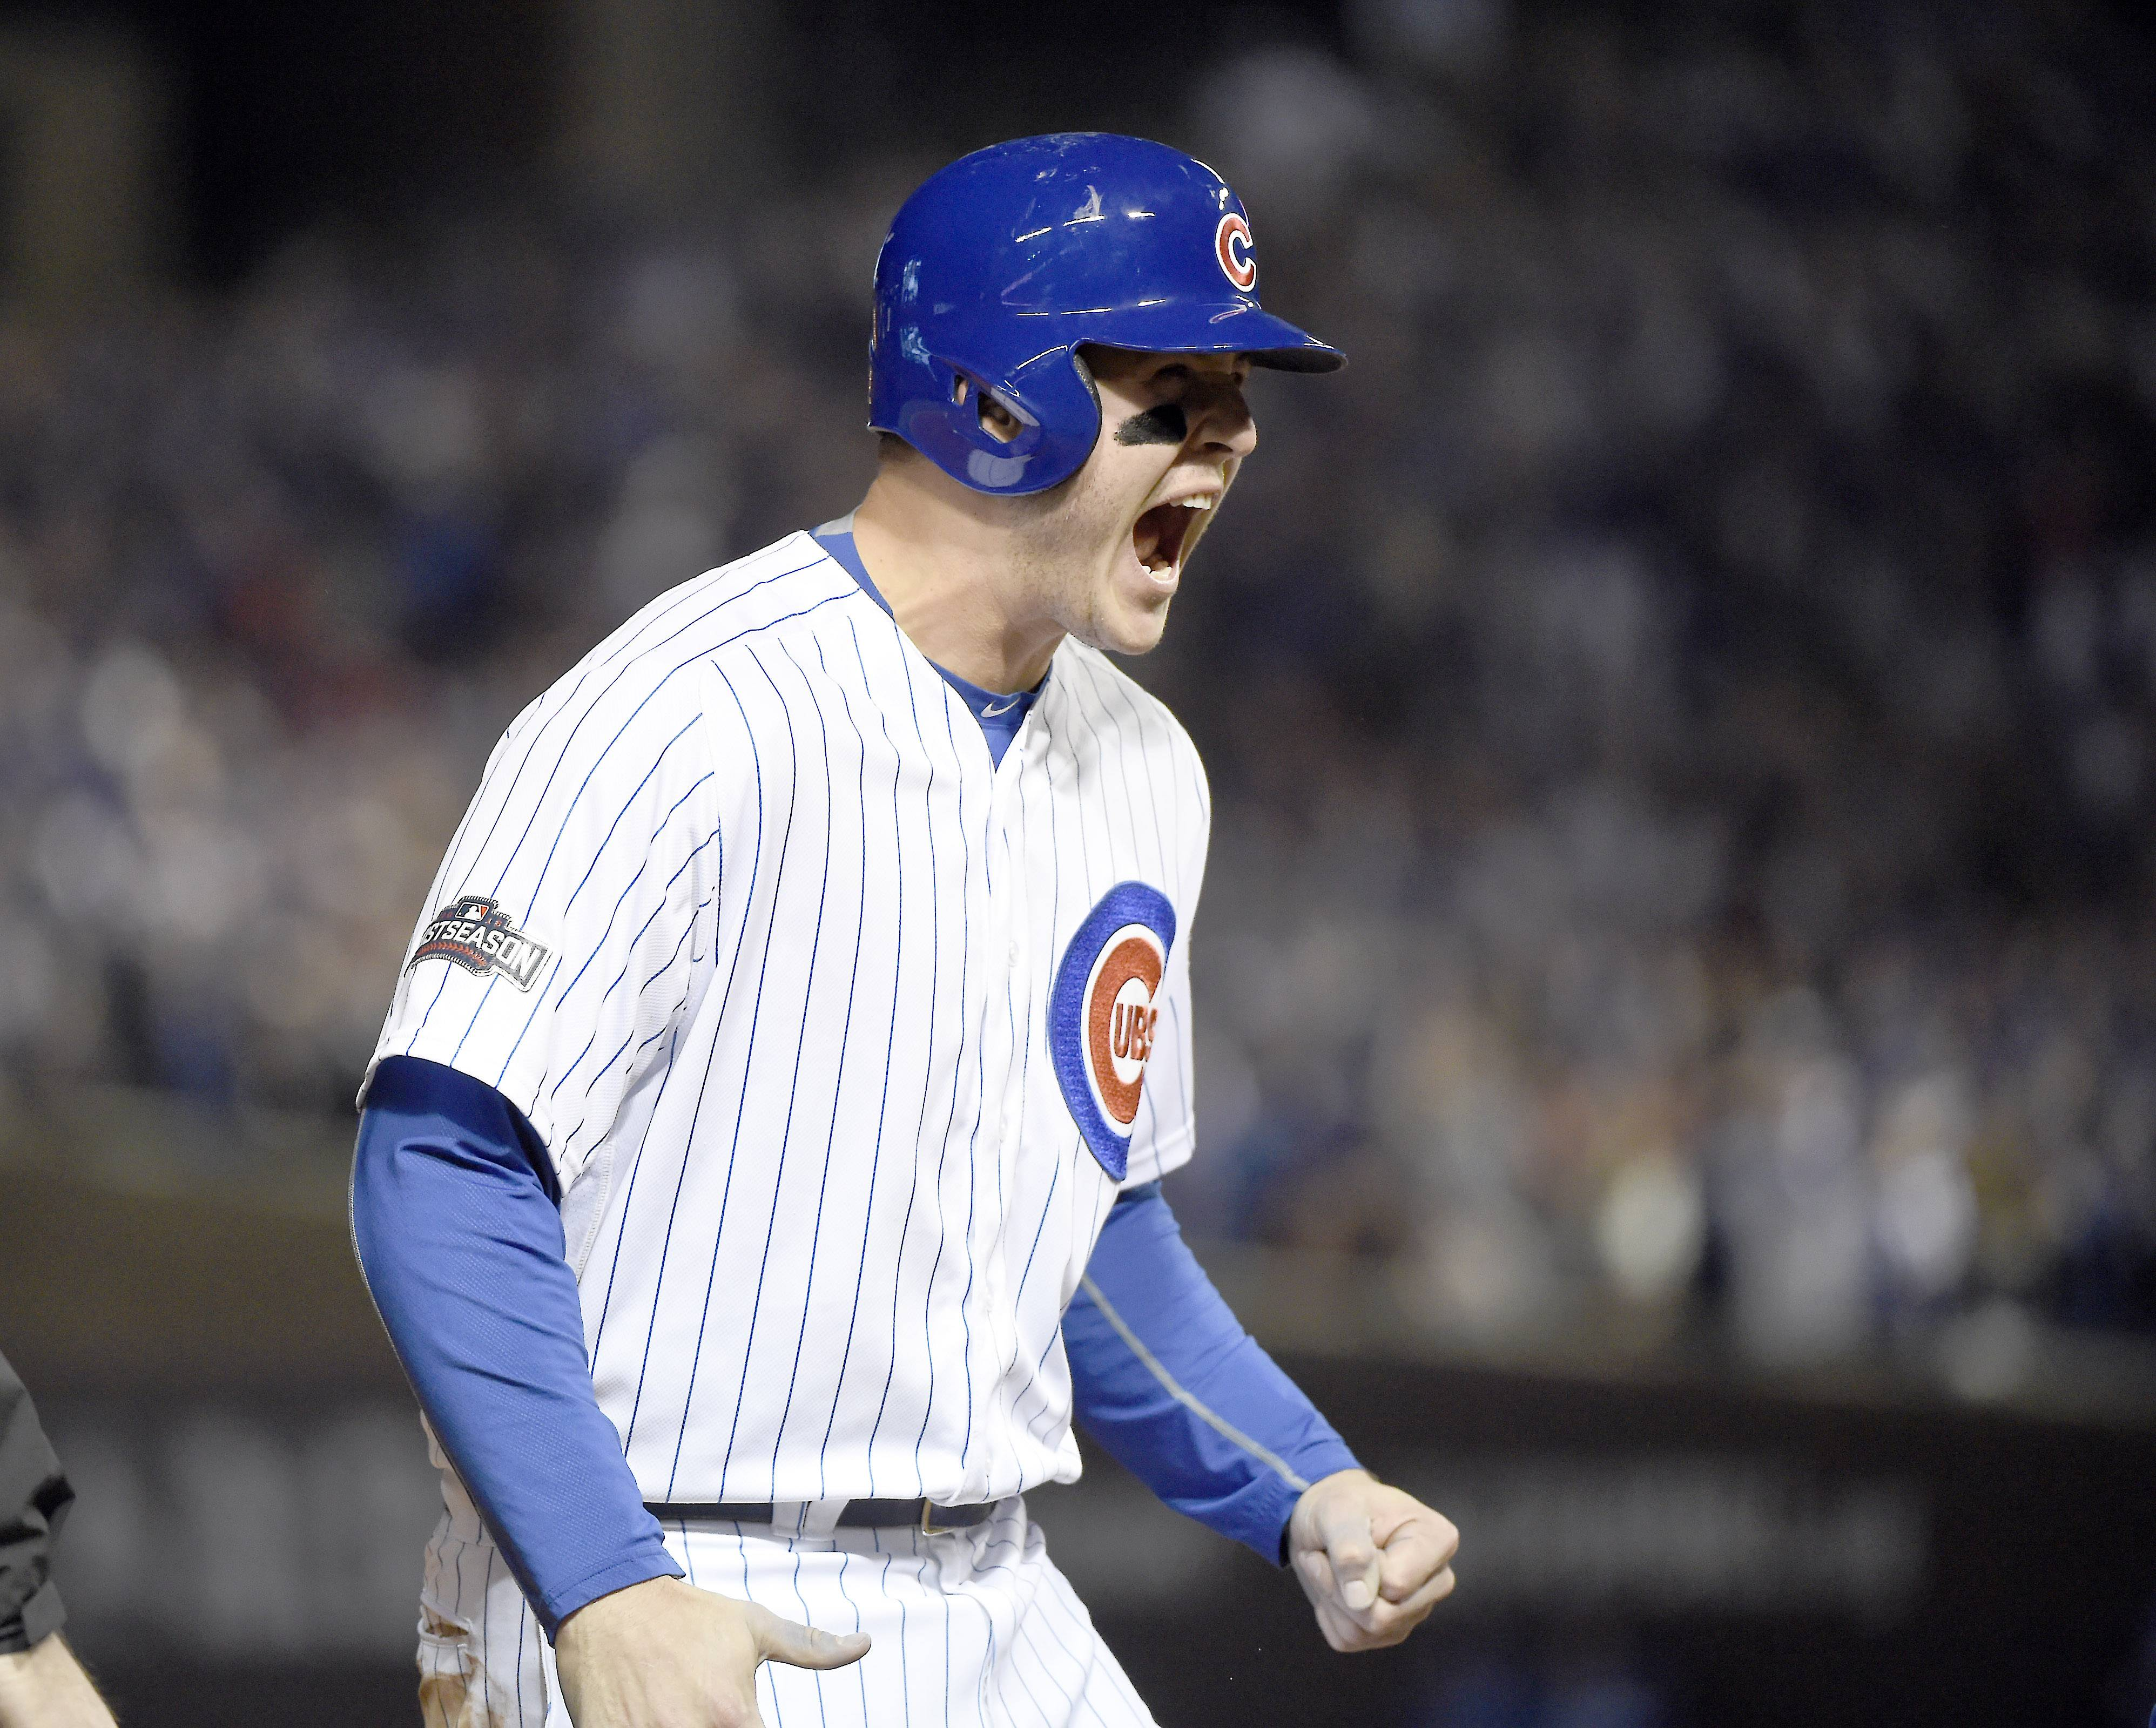 John Starks/jstarks@dailyherald.com Cubs first baseman Anthony Rizzo reacts to his double in the first inning during Game 6 of baseball's National League championship series, Oct, 22 2016, at Wrigley Field in Chicago.